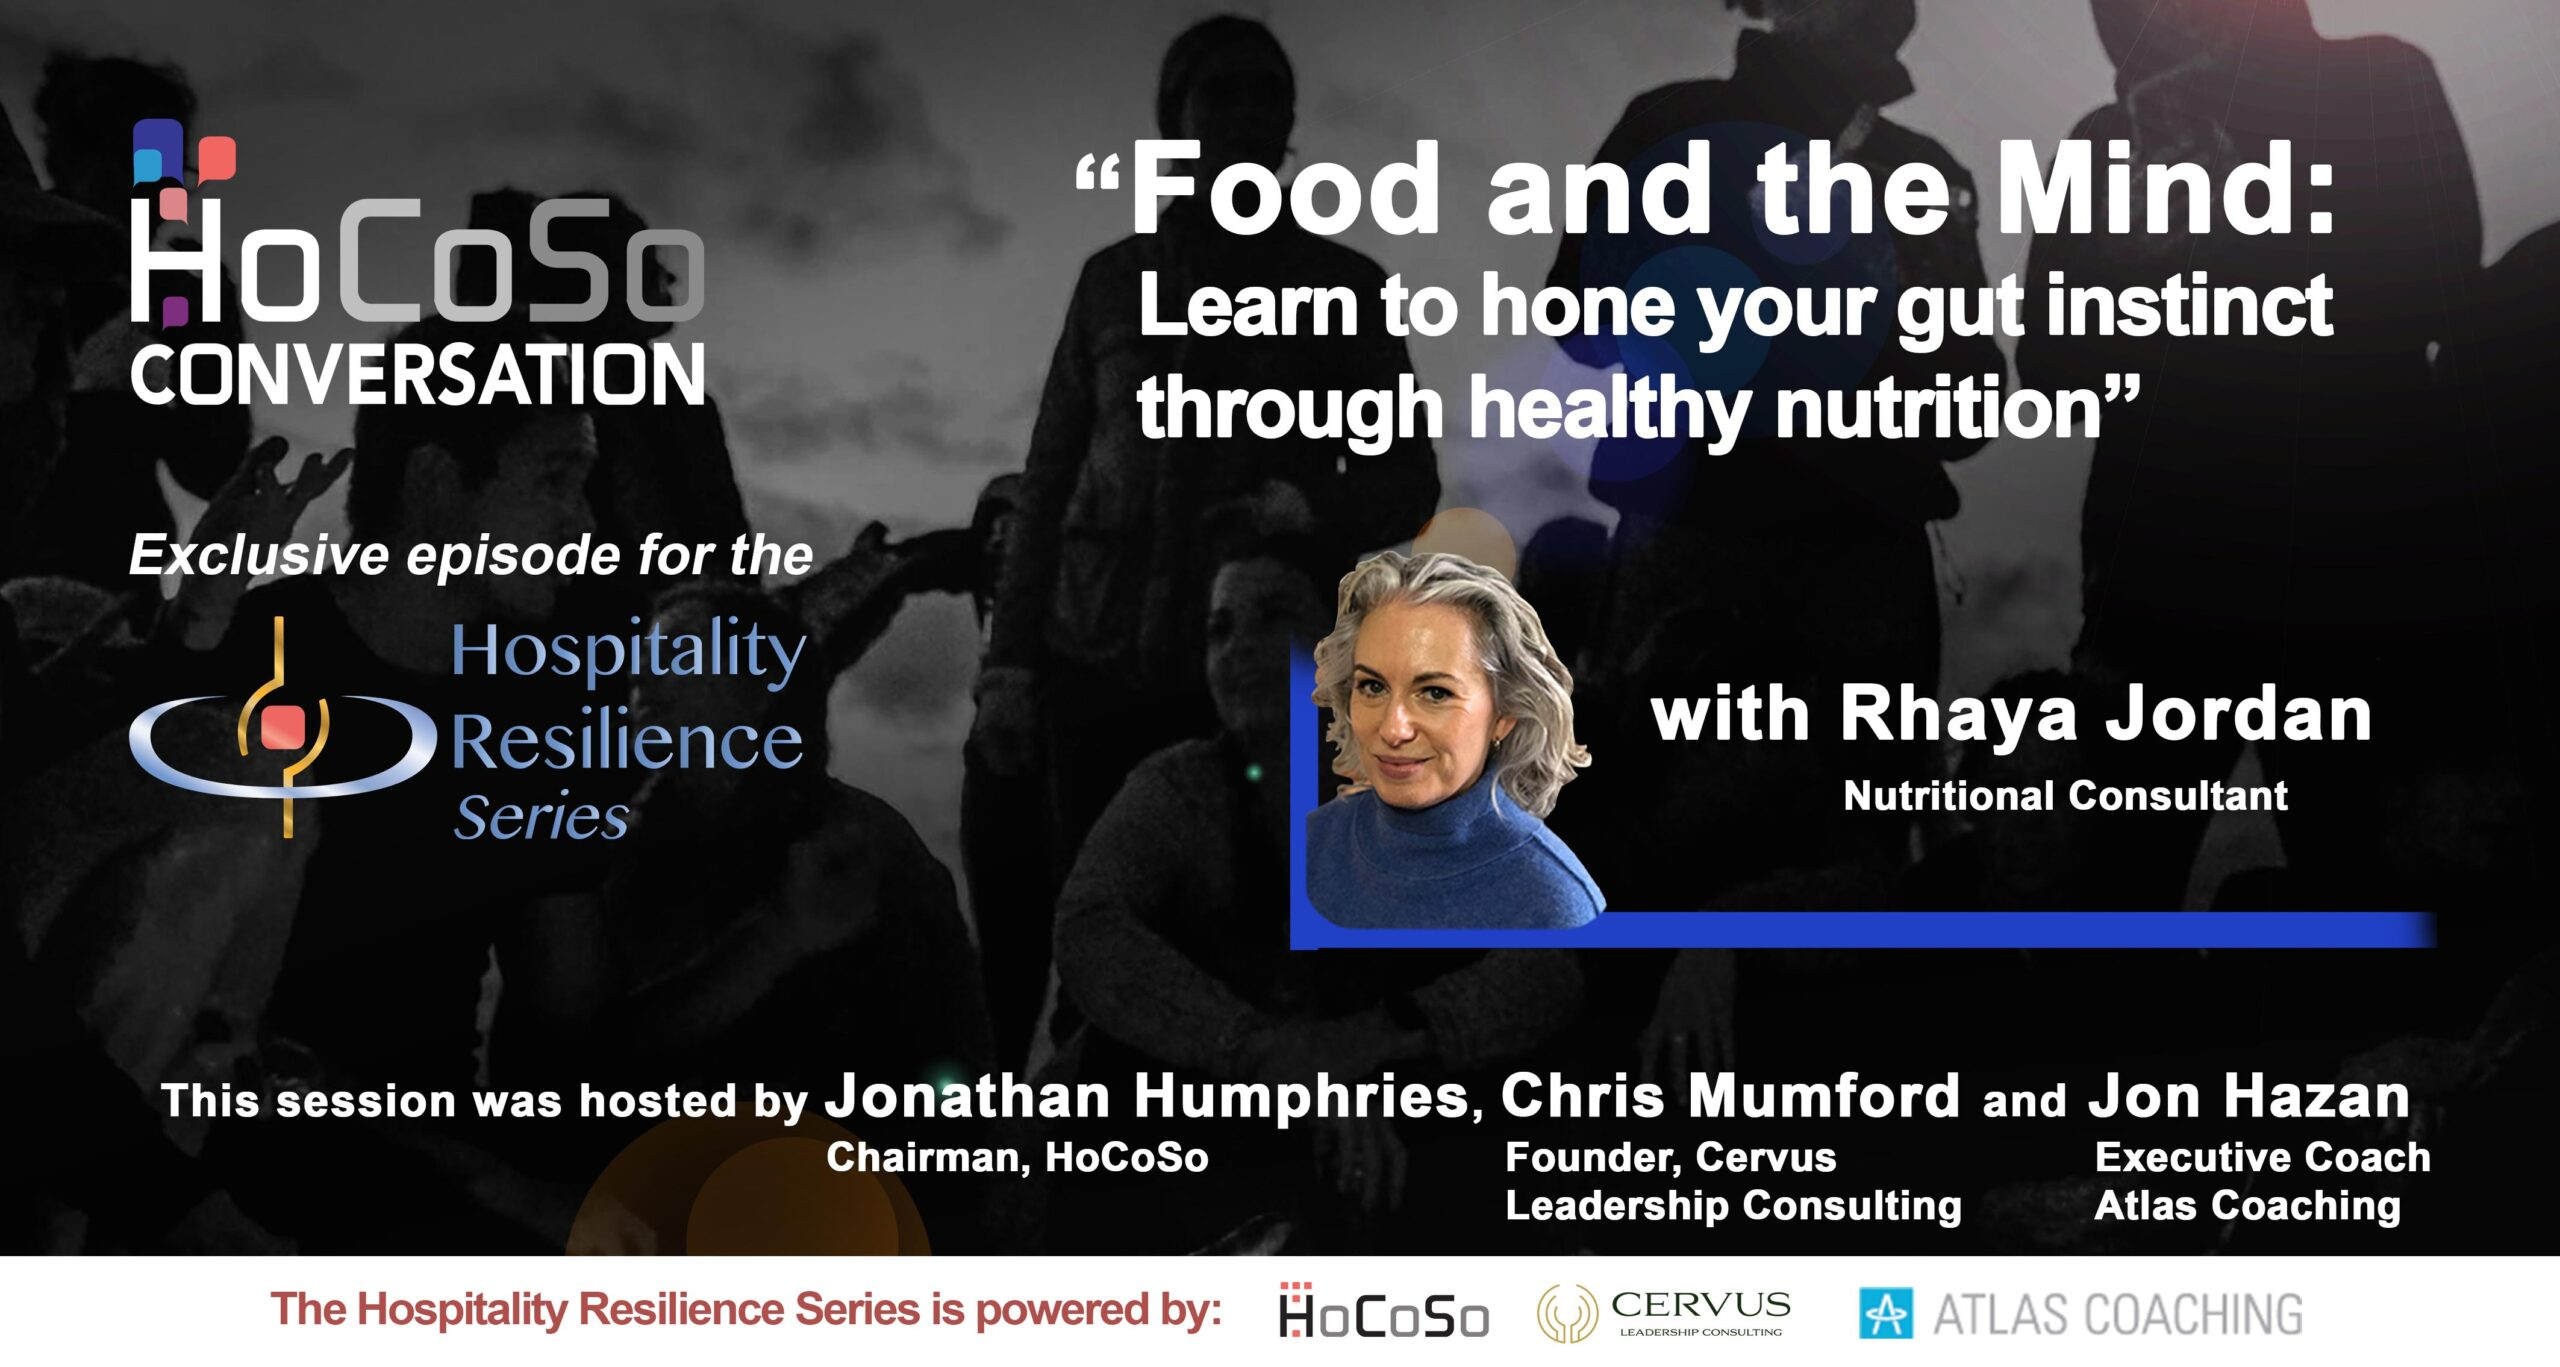 HoCoSo CONVERSATION - Food and Mind / Hone your gut instinct - with Rhaya Jordan